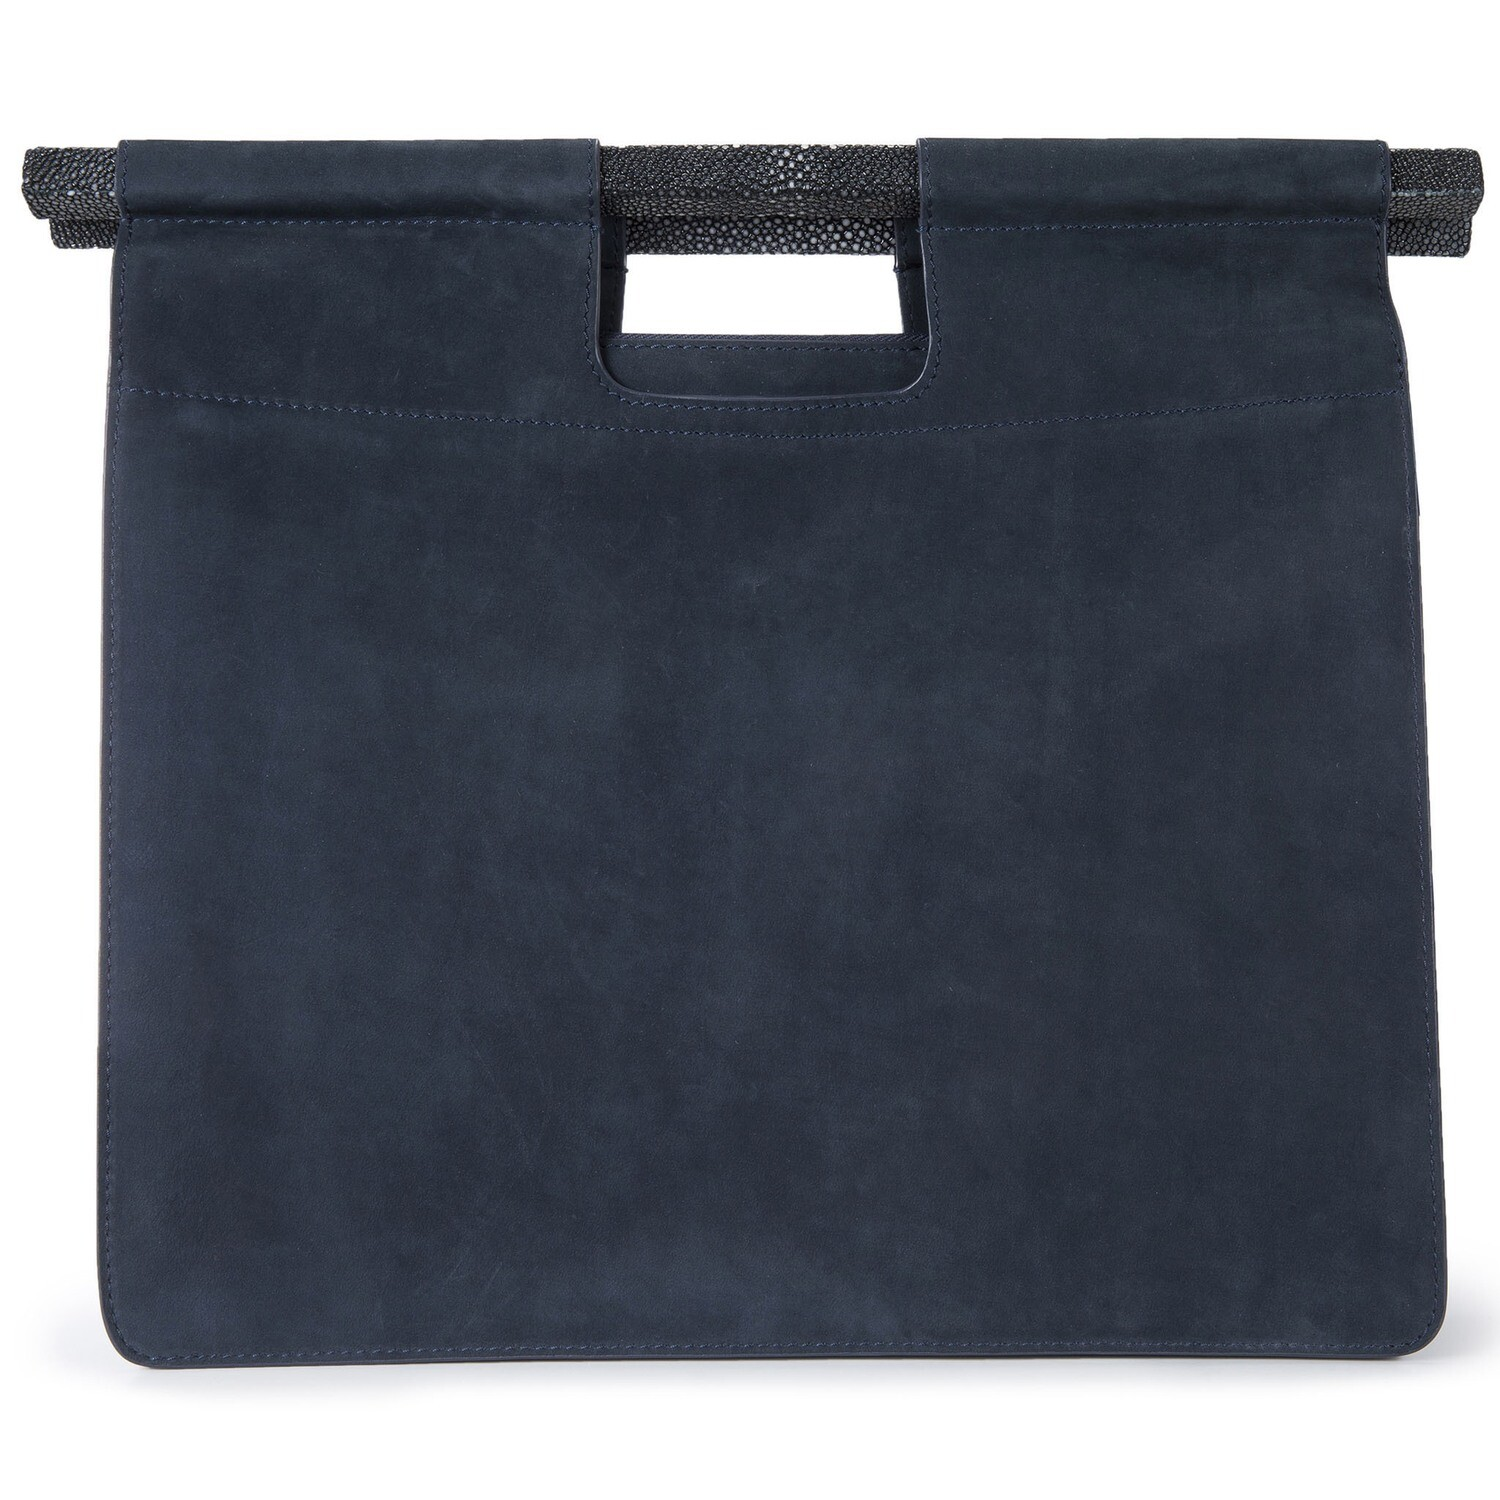 Work Tote in Pewter Nubuck with Strap